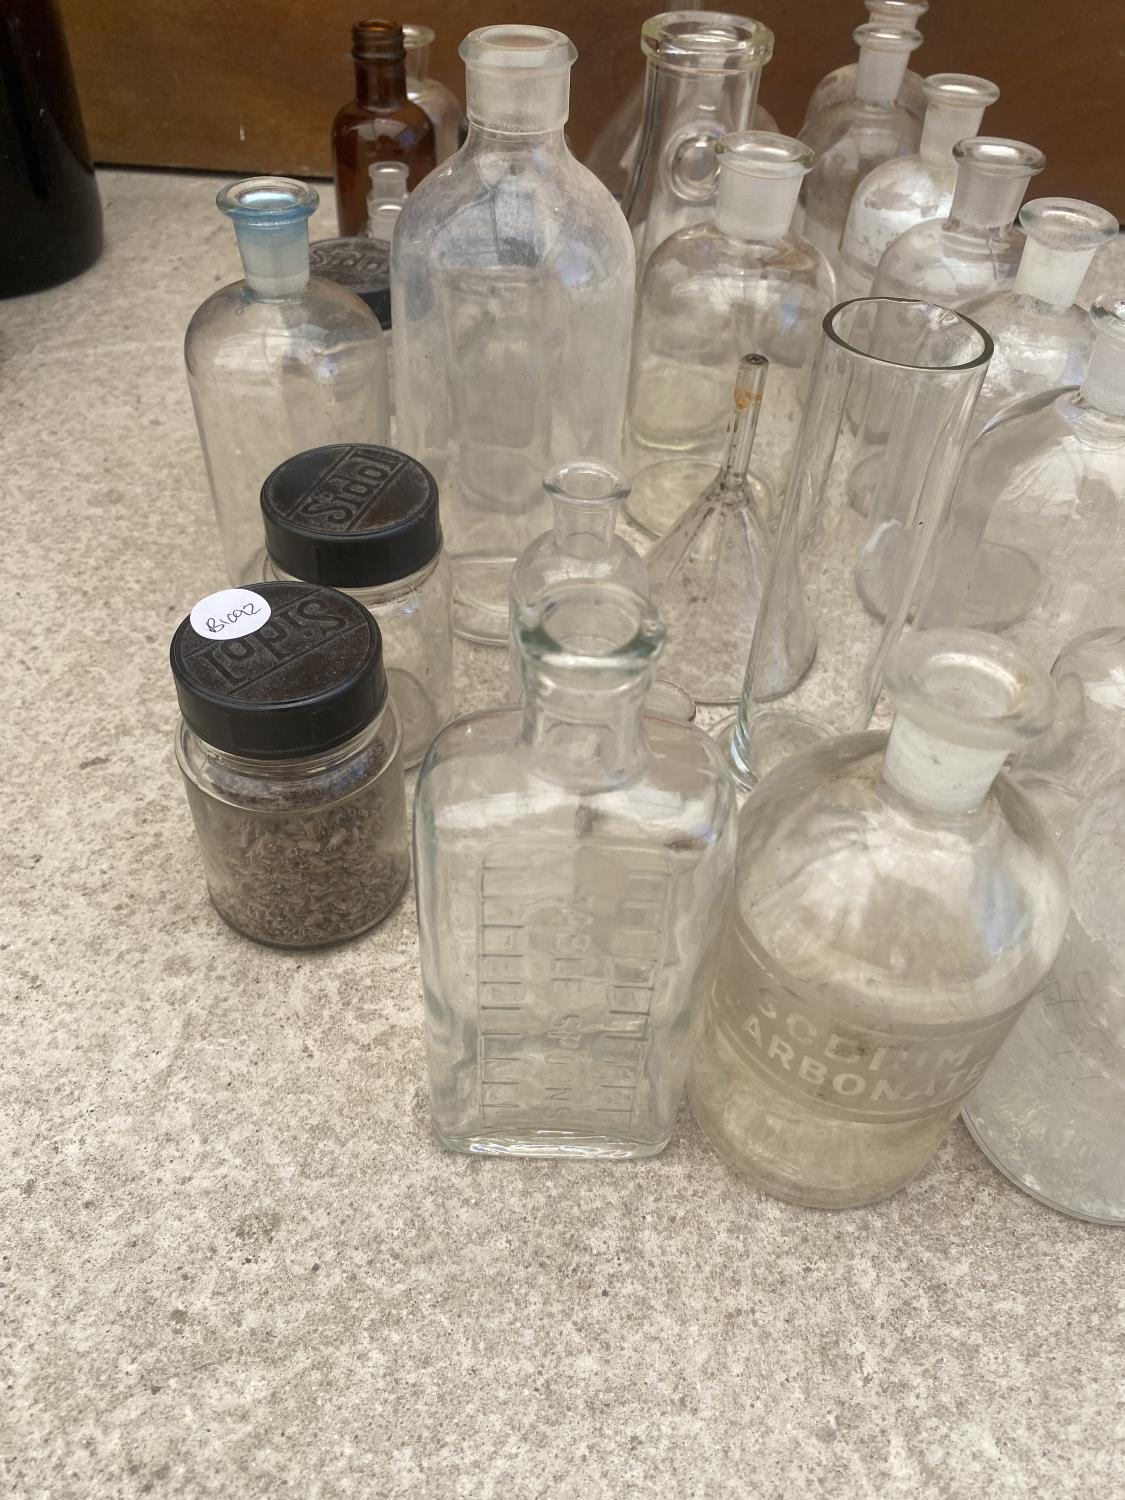 AN ASSORTMENT OF GLASS LAB BOTTLES AND JARS - Image 2 of 5